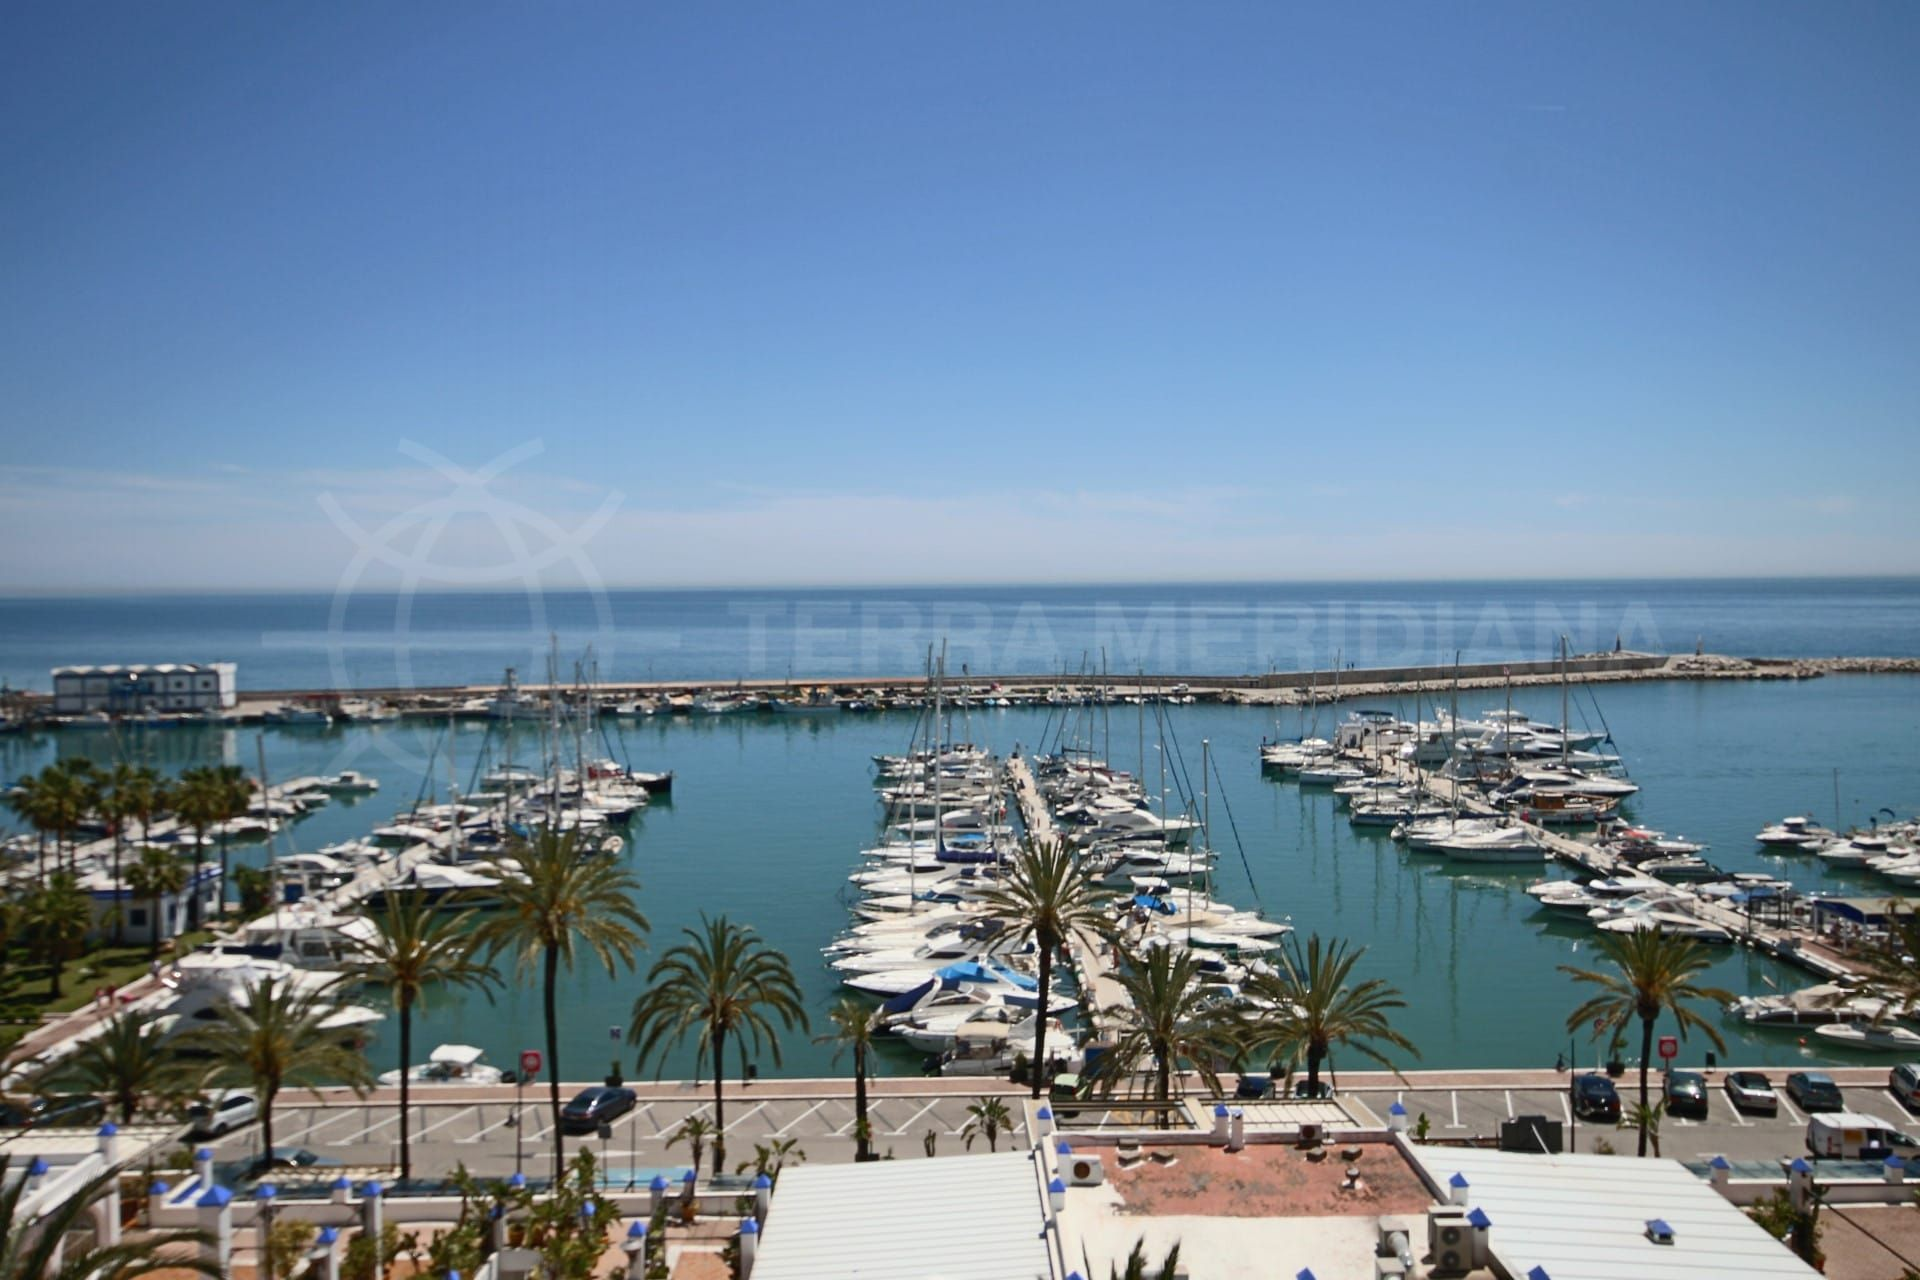 Estepona Marina and Port guide | Living in Estepona Marina